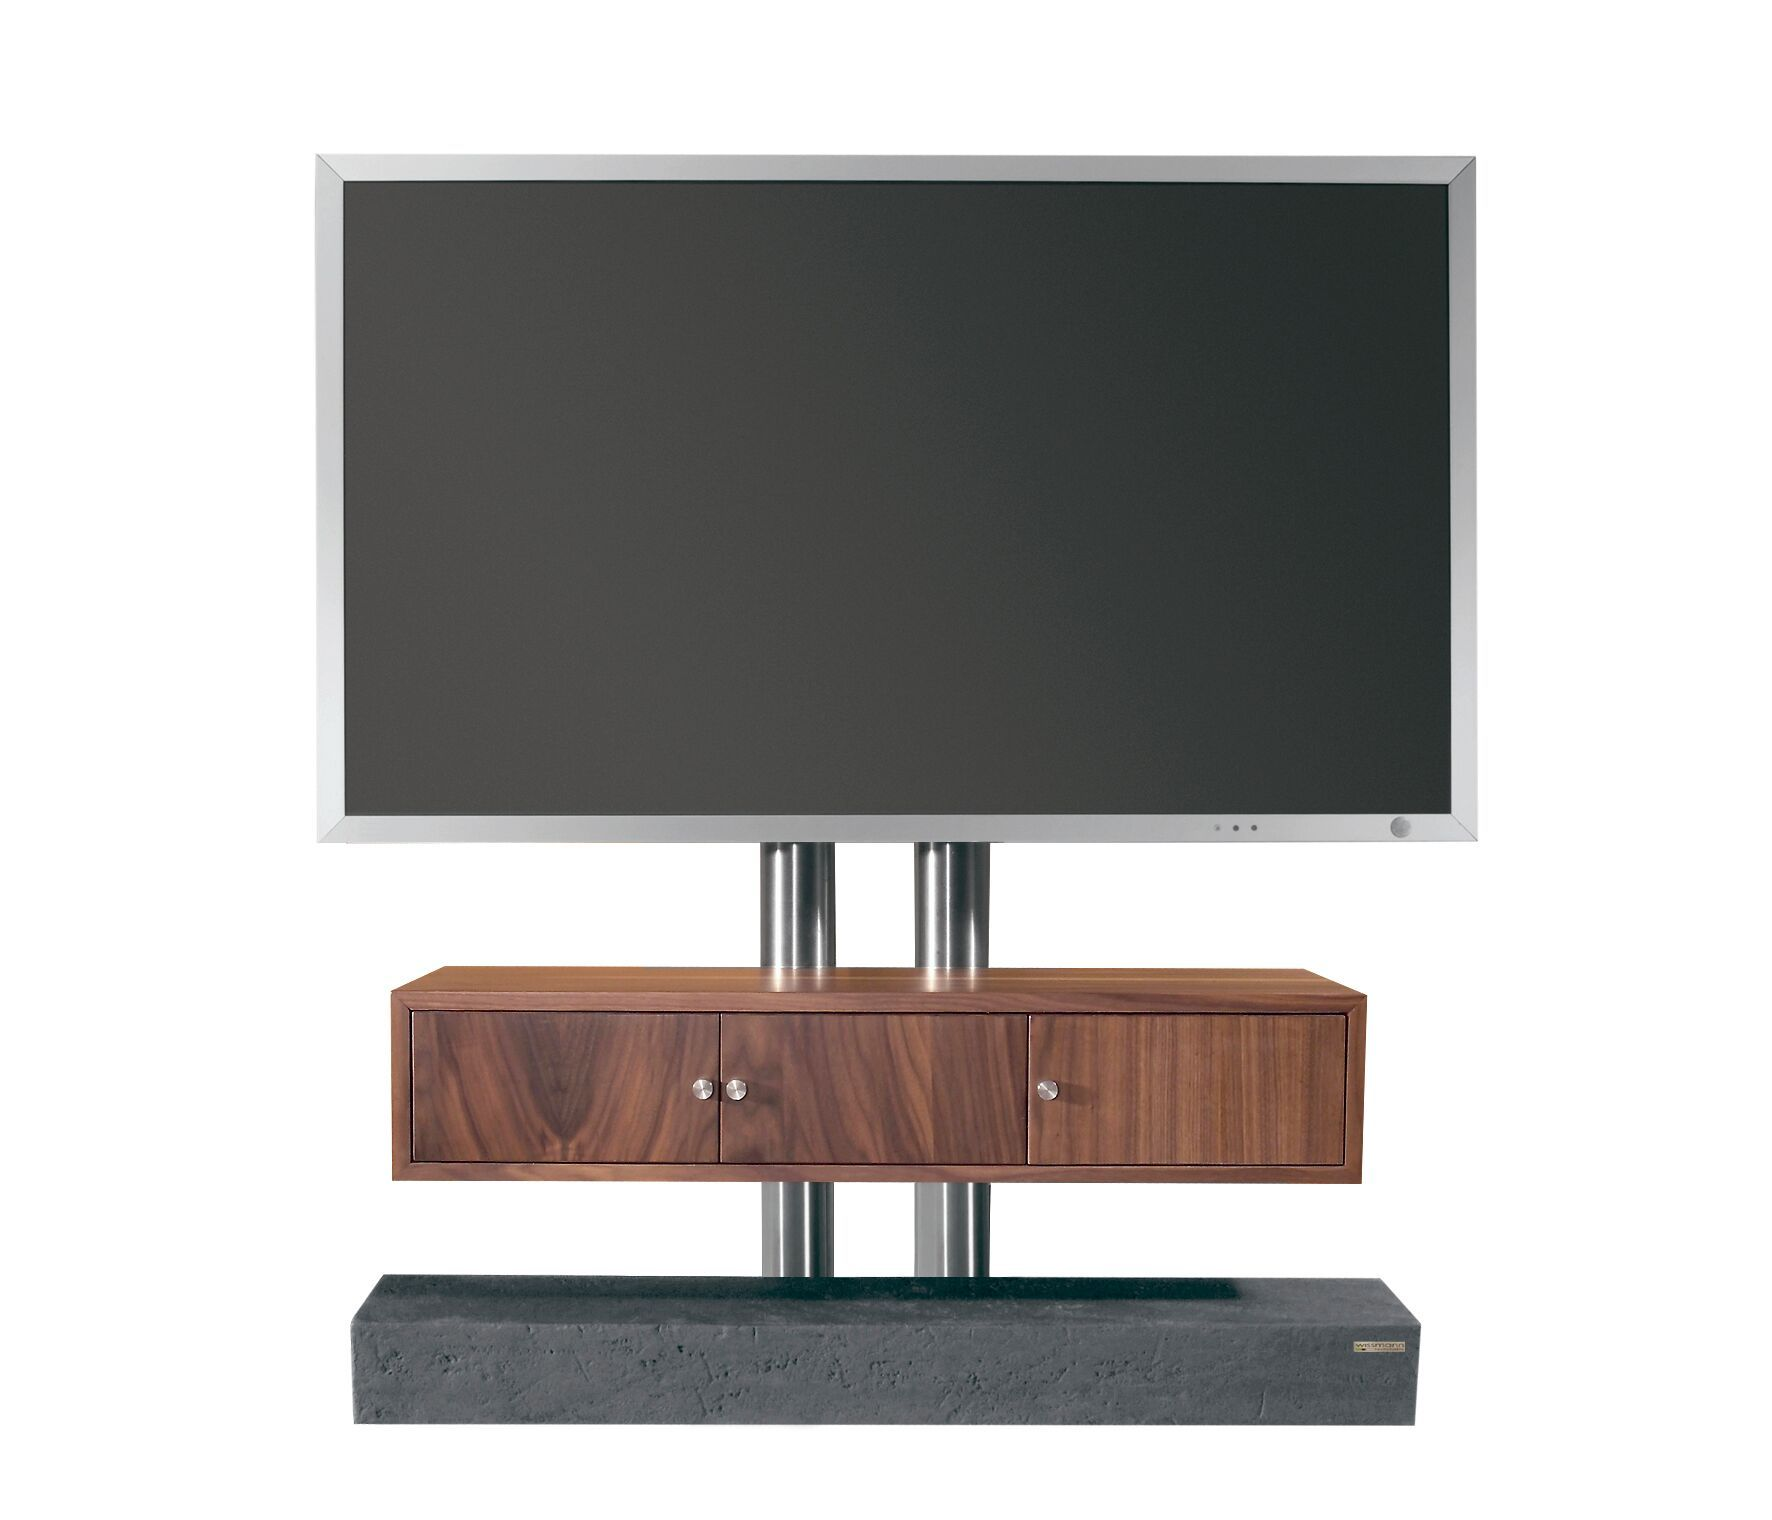 TV Stand / Ständer Concealed cable management. Integrated